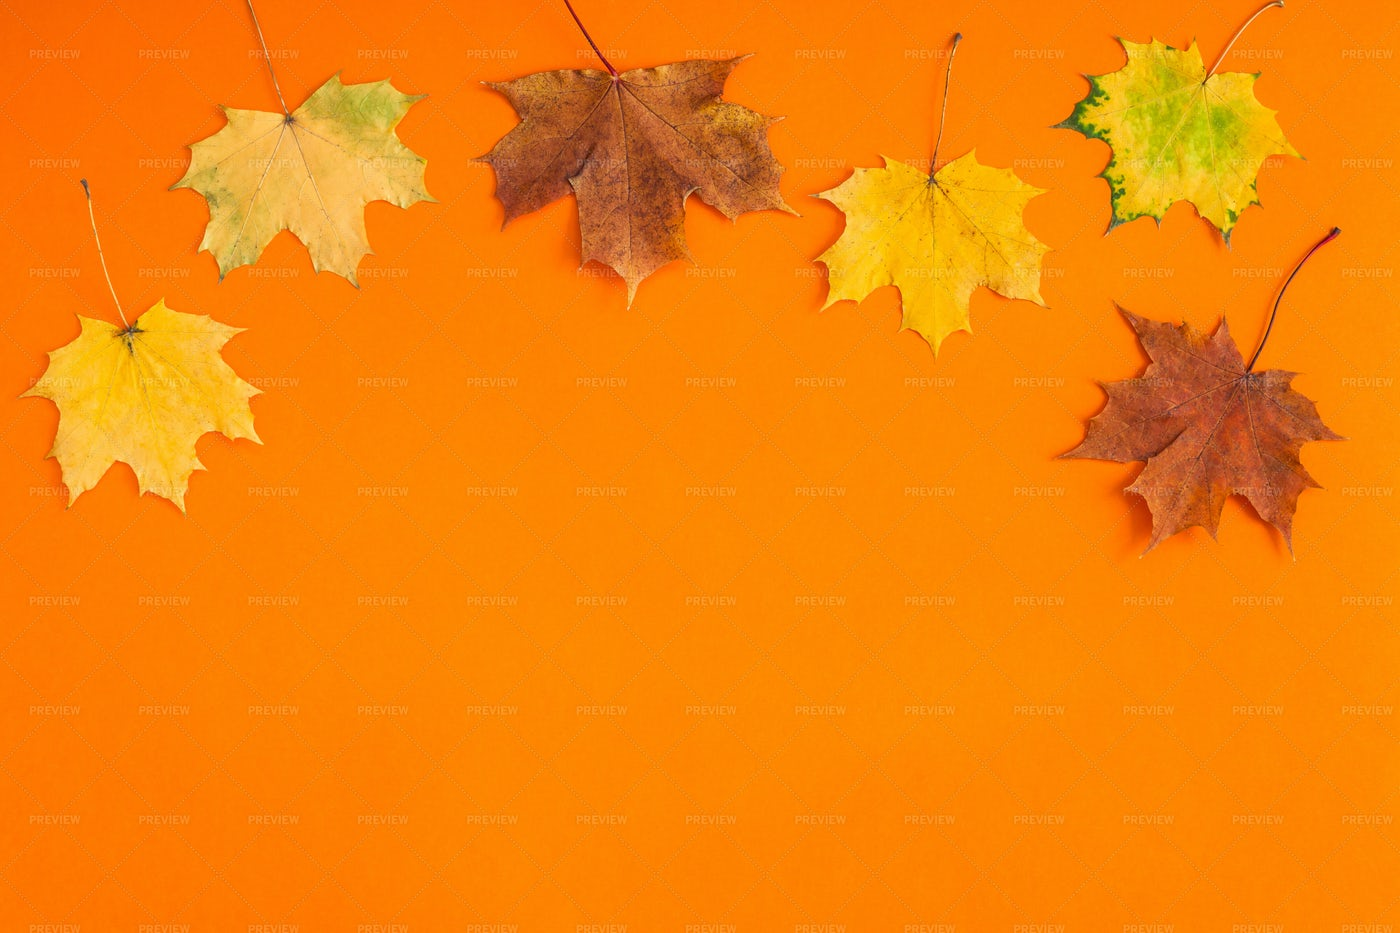 Autumn Leaves On Orange: Stock Photos